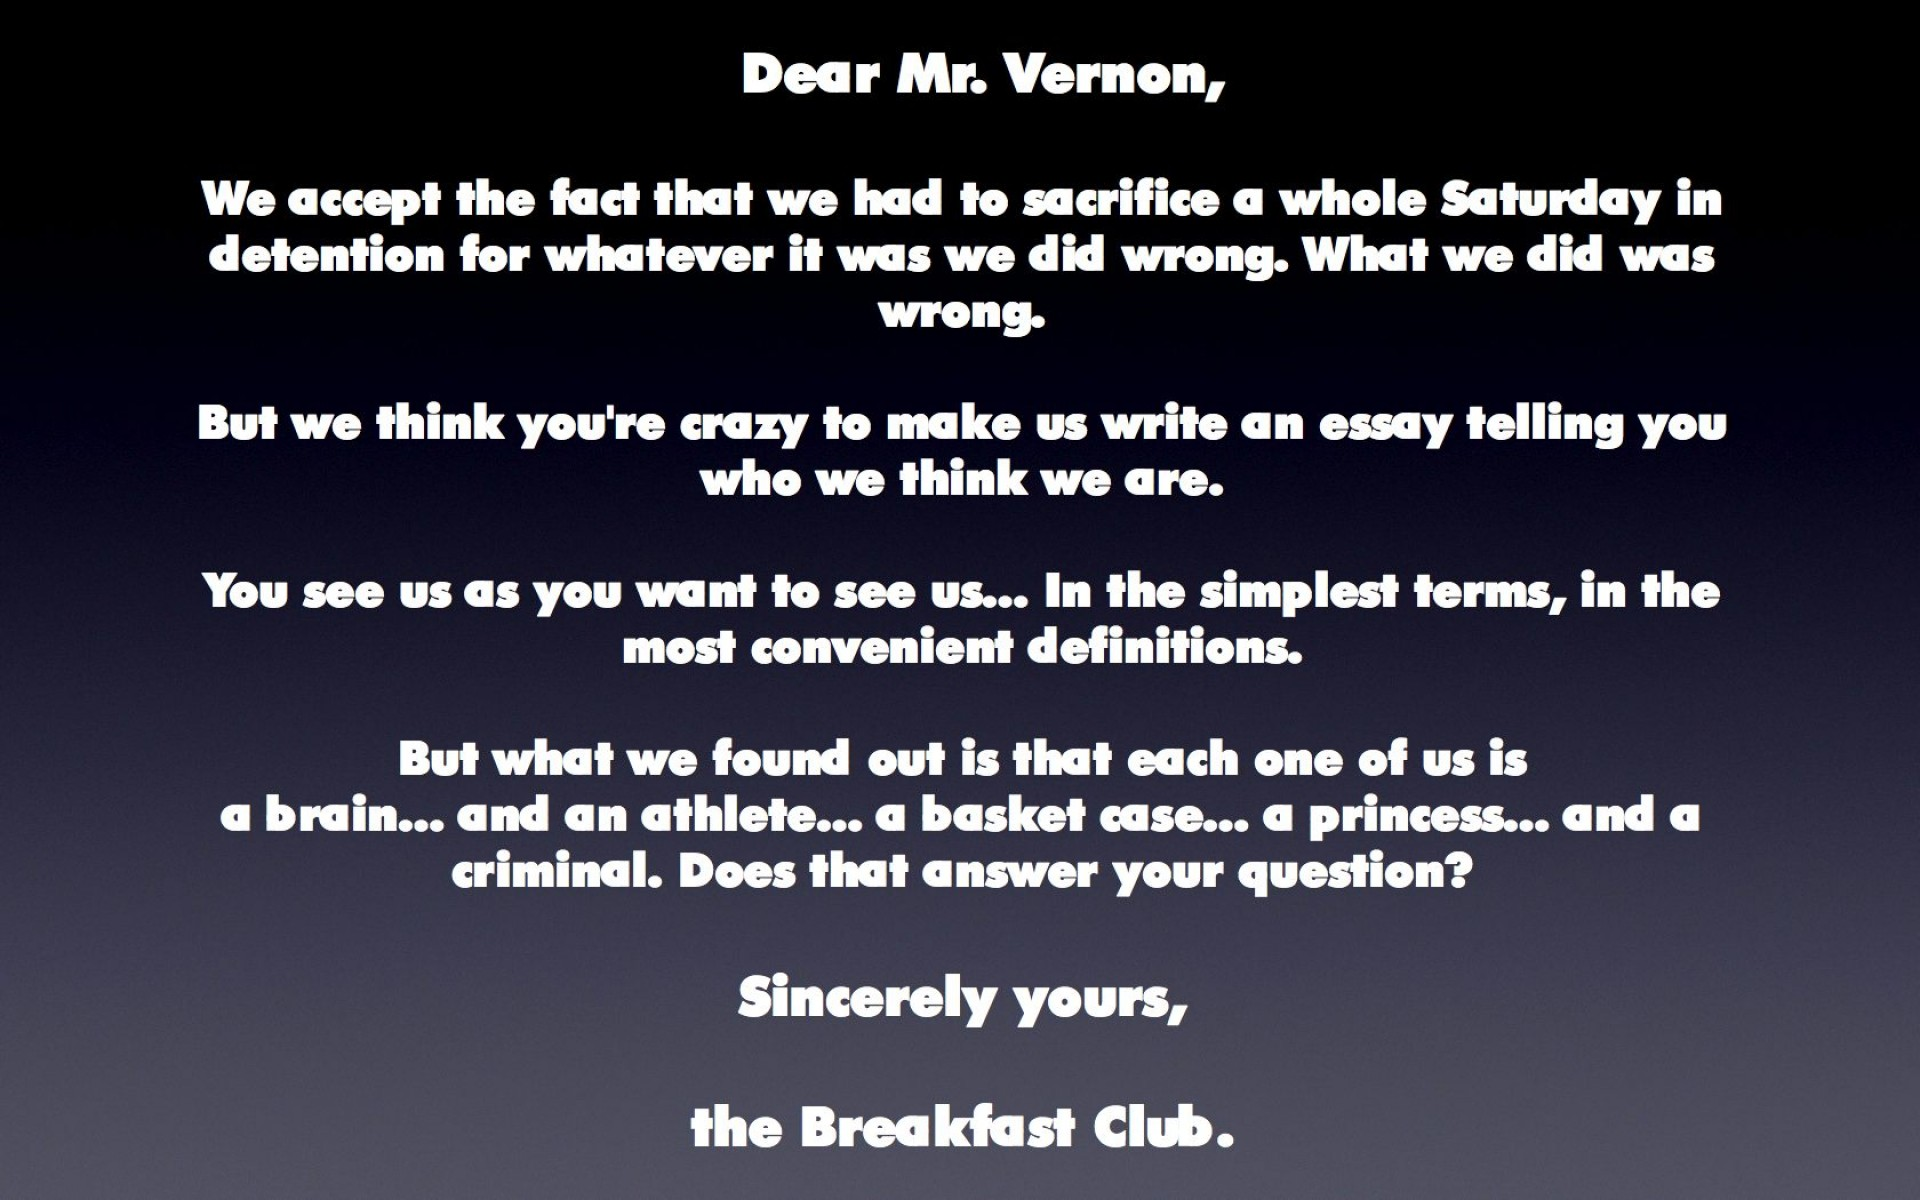 007 The Breakfast Club Essay Example From Jacksonbig On Movie Brians Final Questions Breathtaking Scene Introduction Analysis 1920